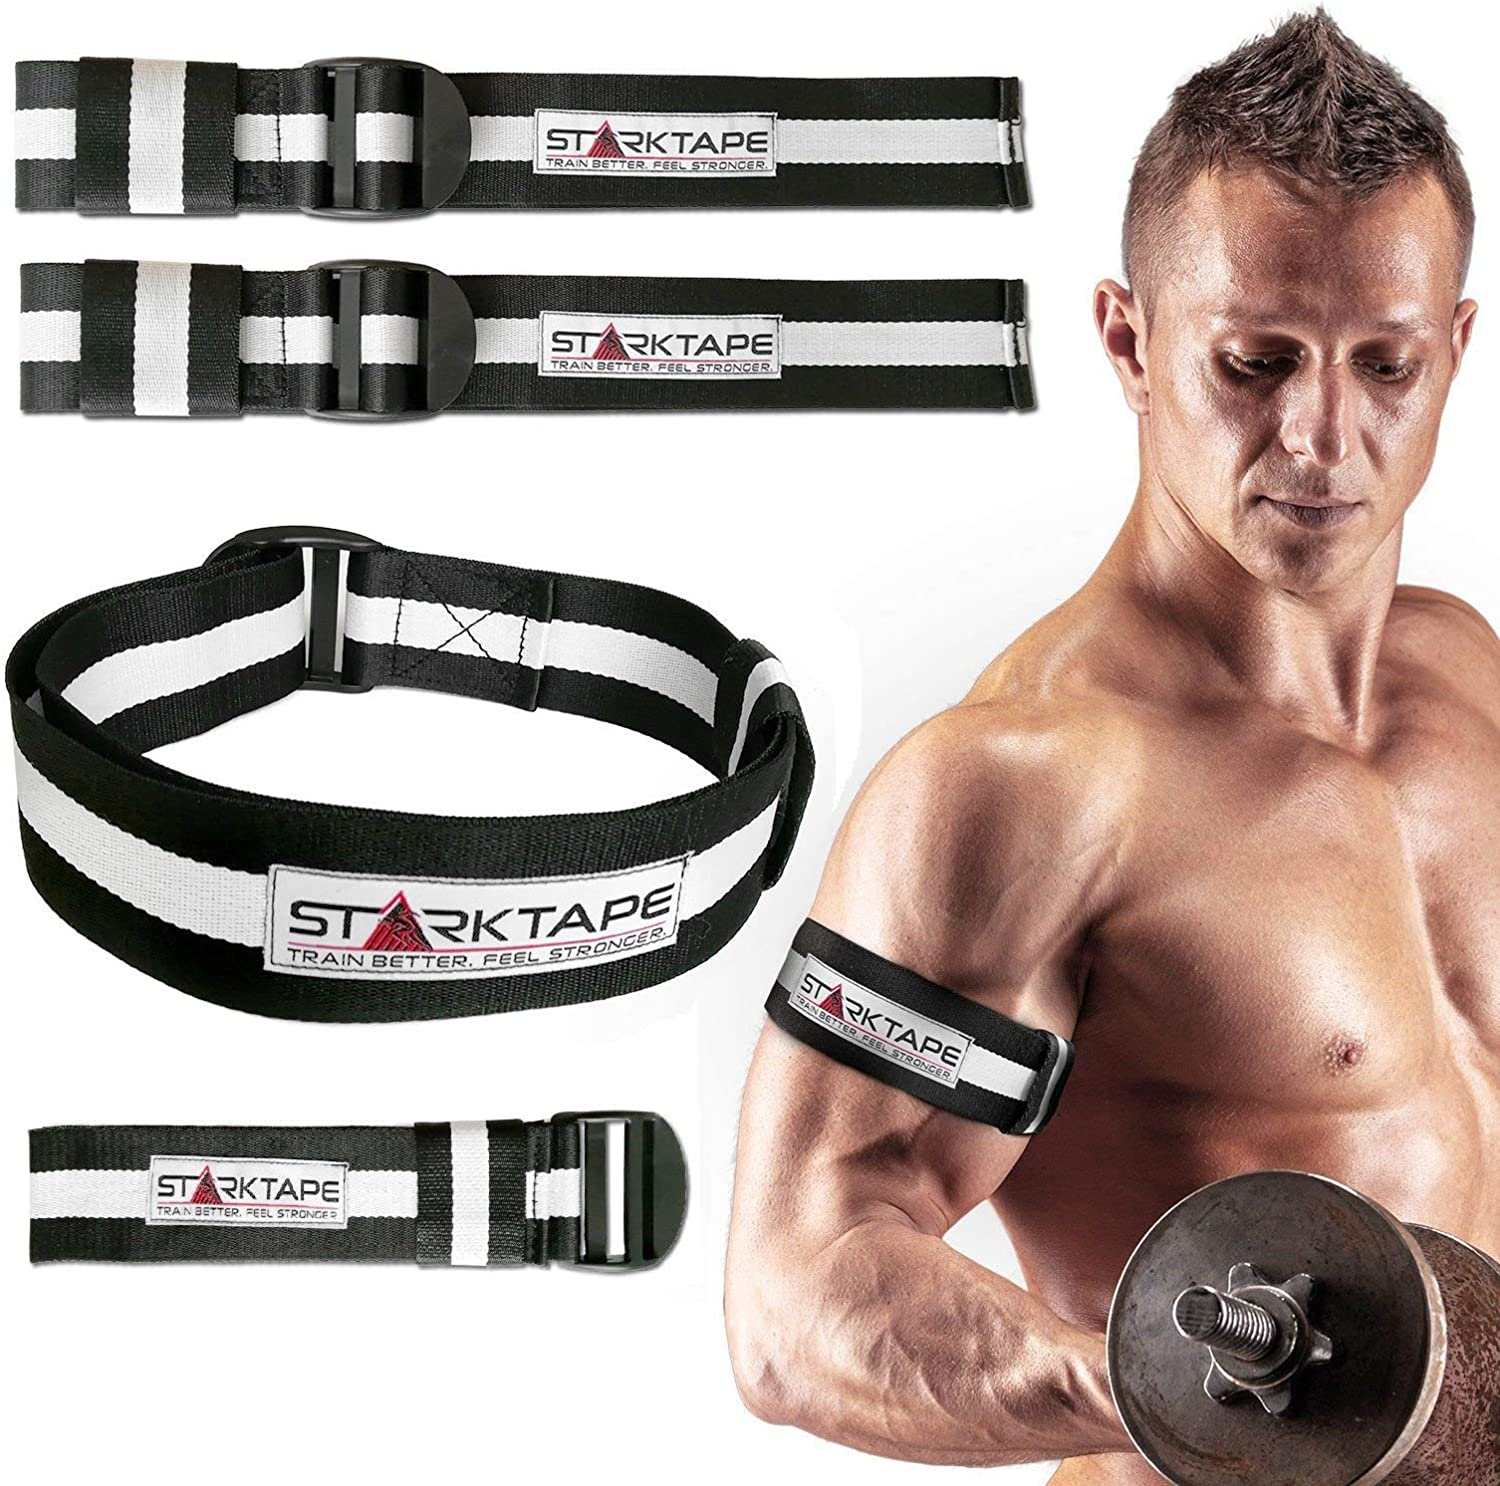 TOP GYM ORANGE BICEP STRAP/'s Max Bicep Blood Flow Restriction Occlusion Bands